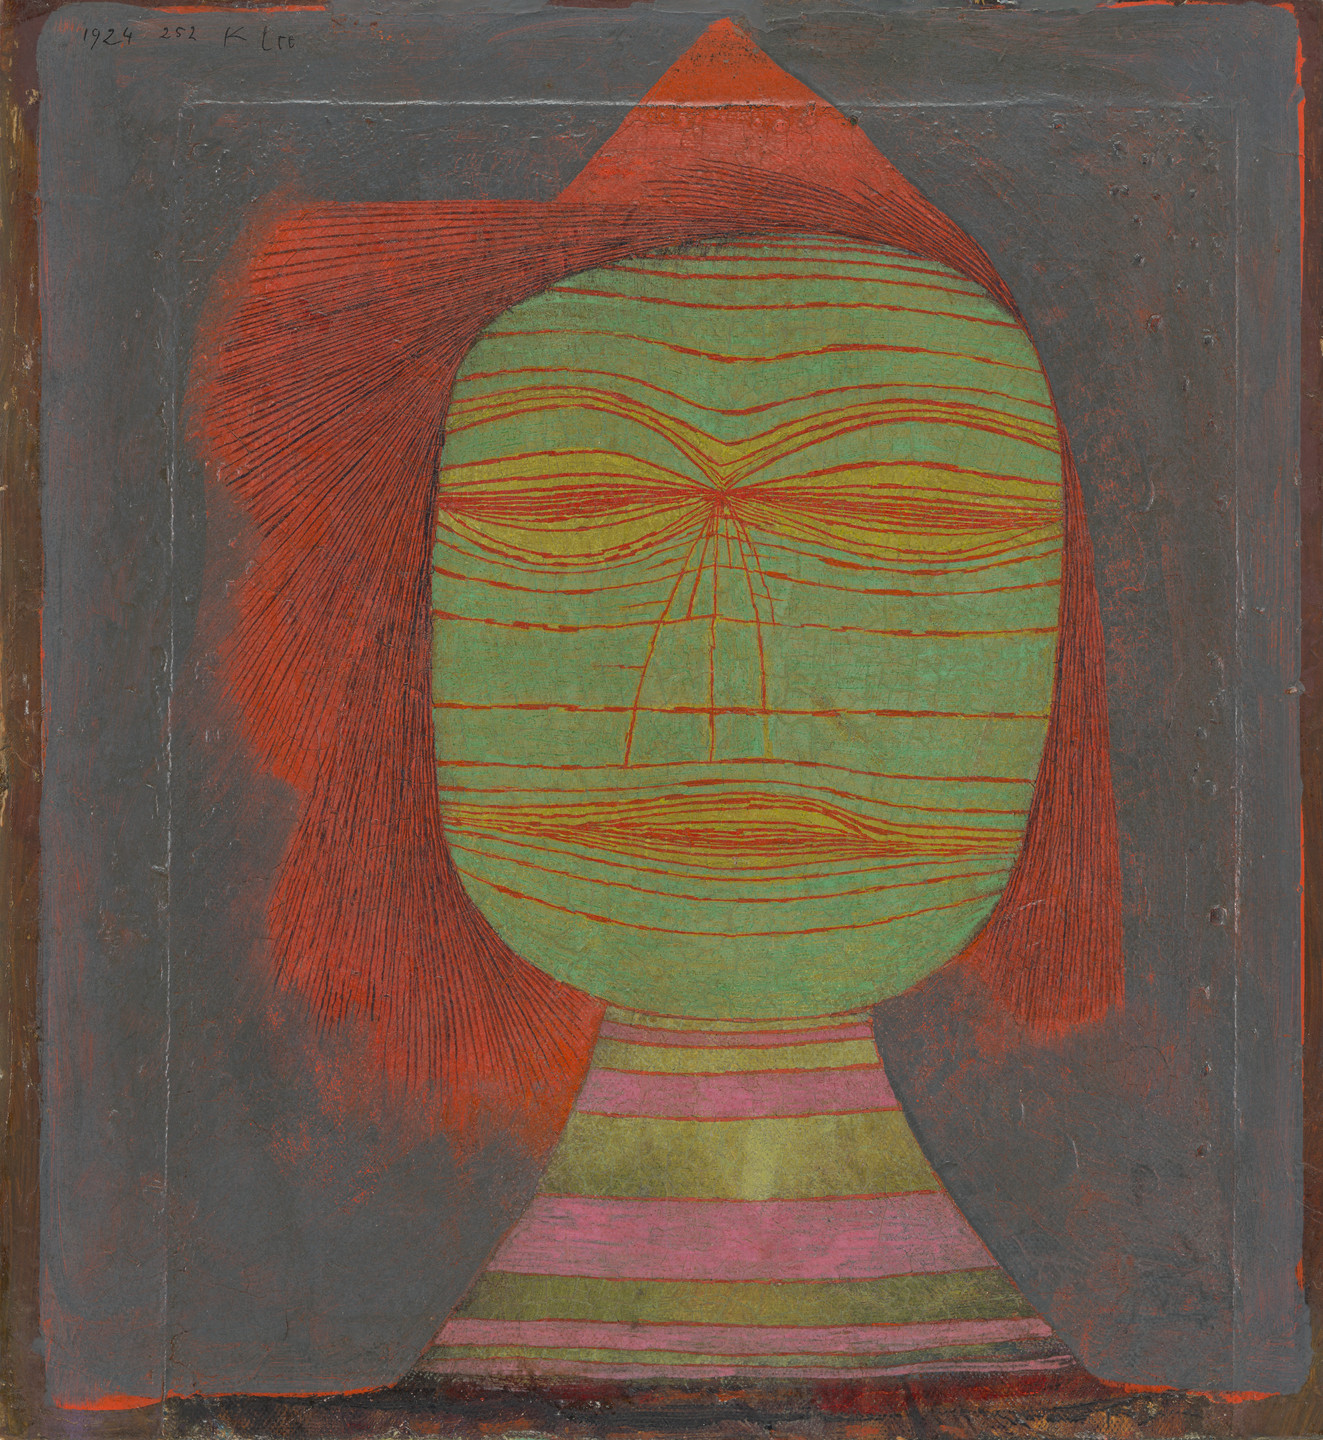 Paul Klee. Actor's Mask. 1924